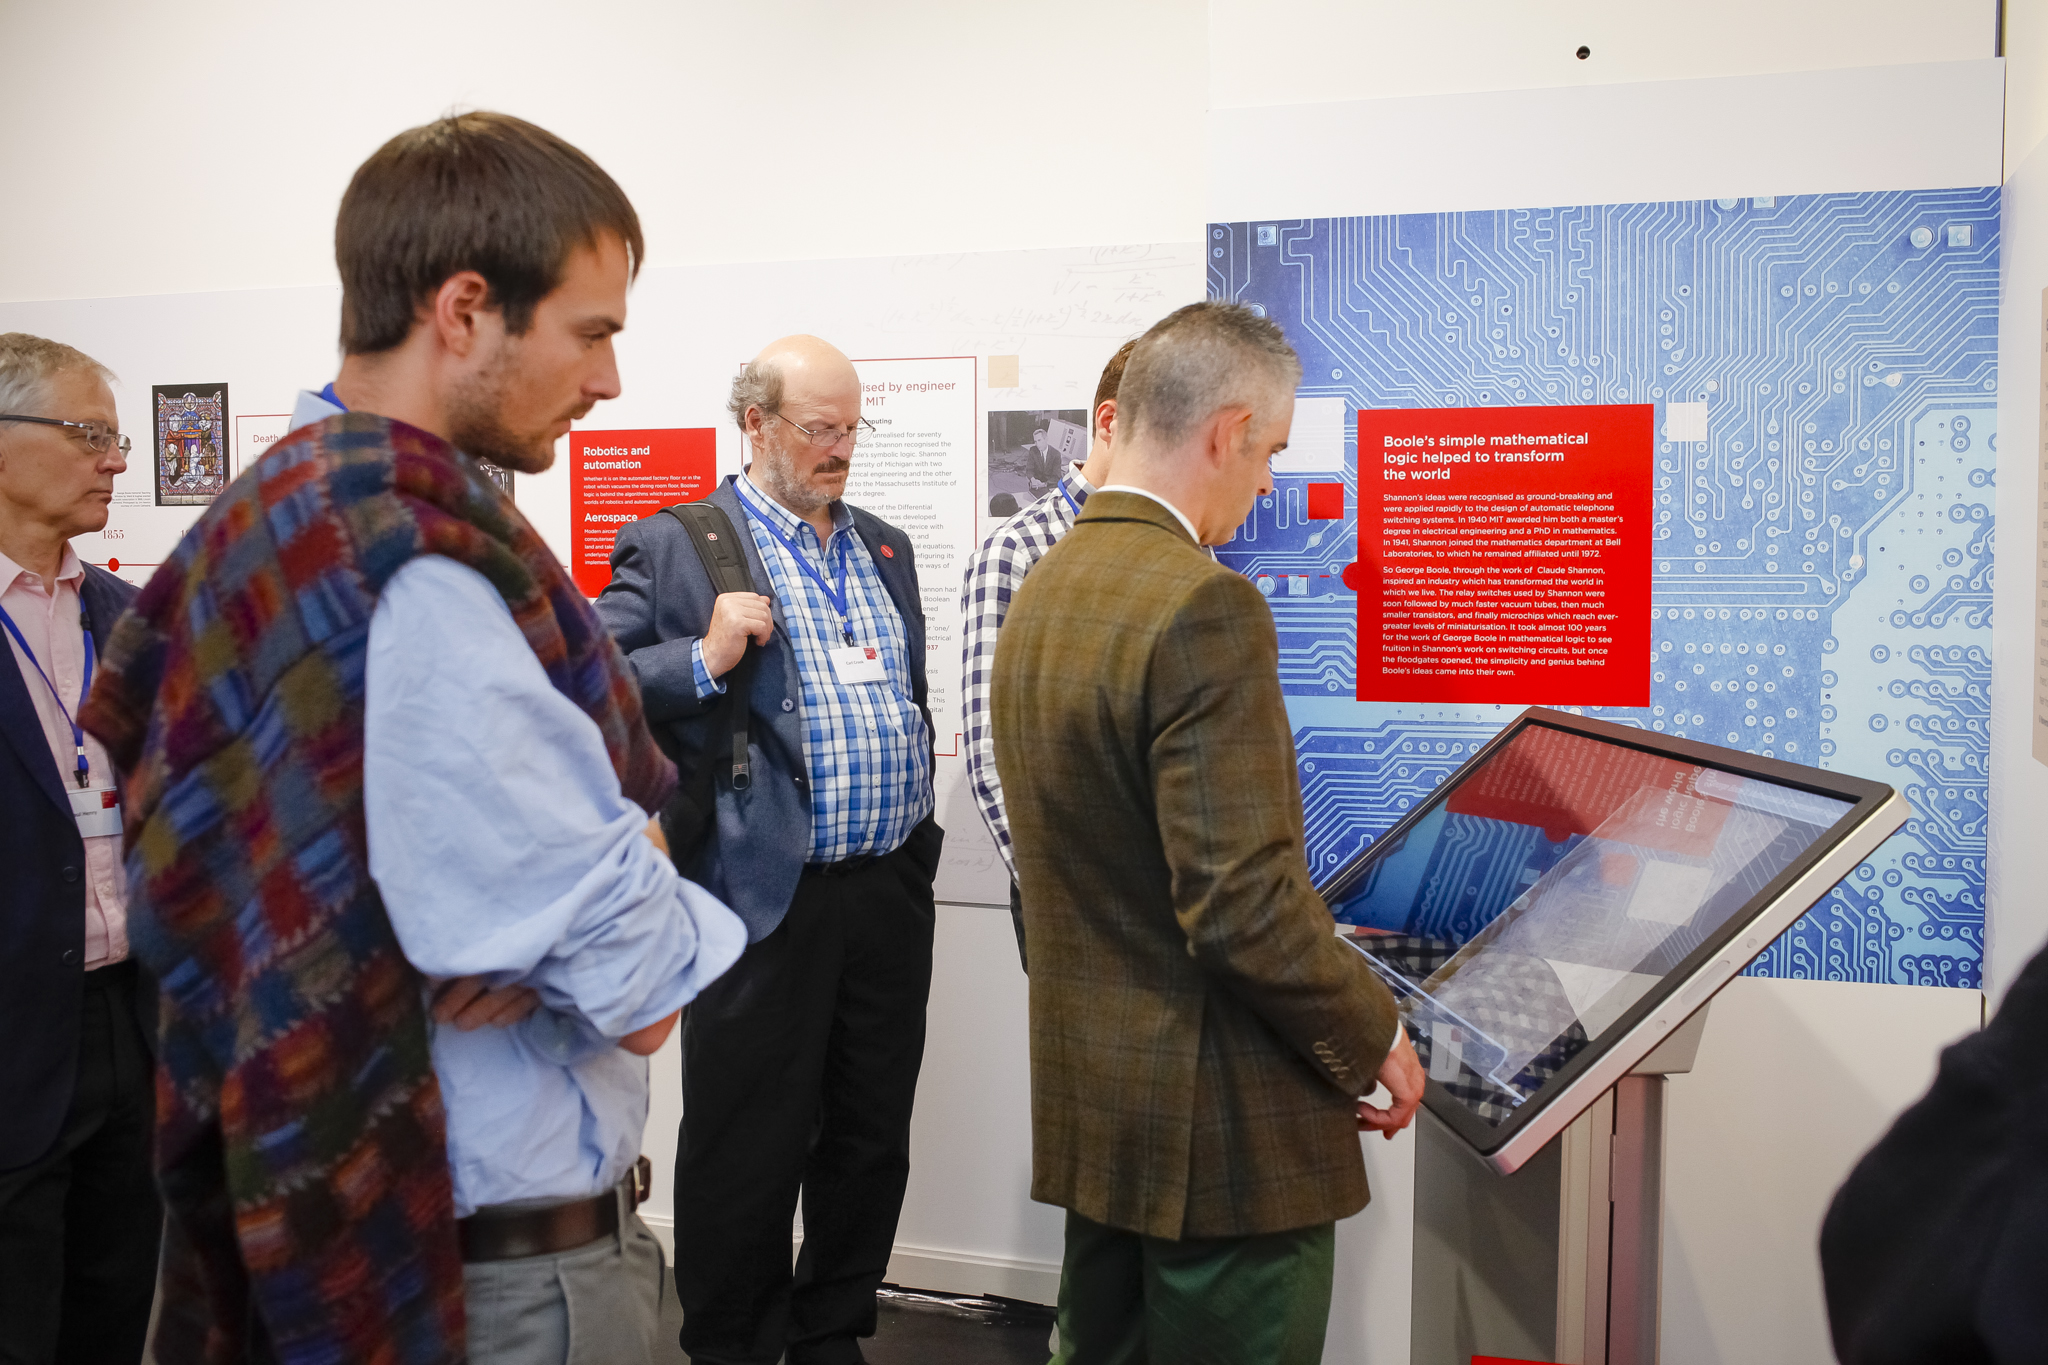 Guests at the launch of the Boole Library exhibition, The Life & Legacy of George Boole